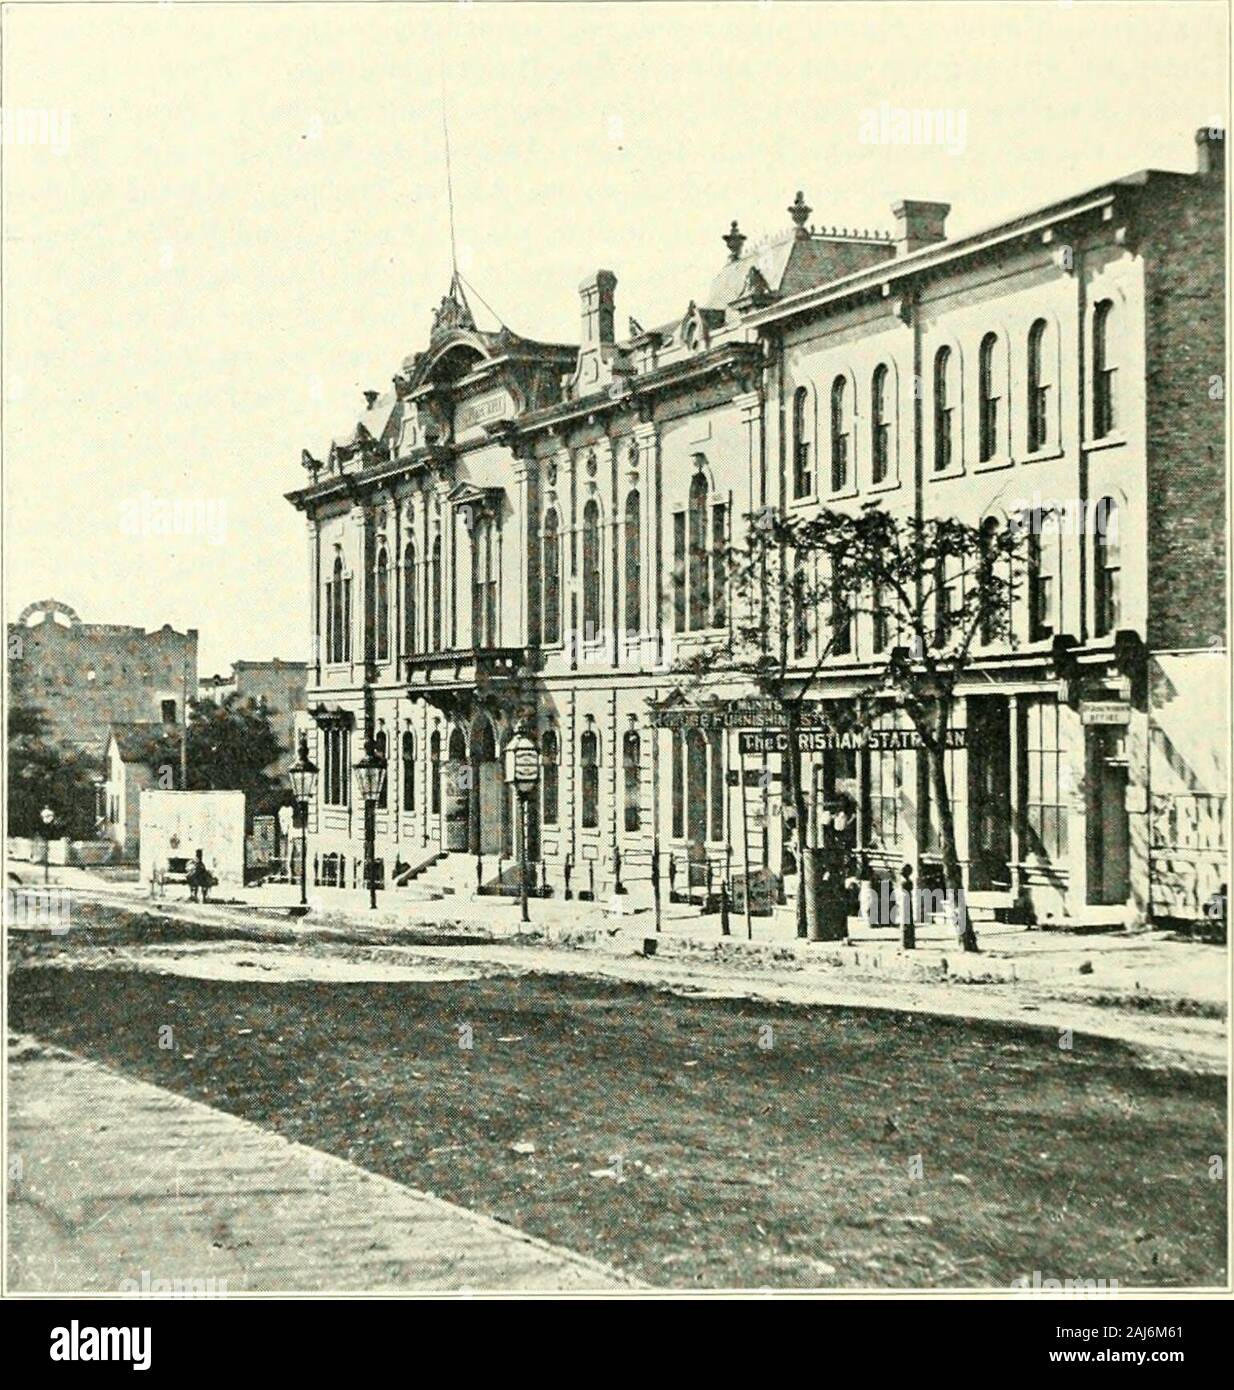 History Of Milwaukee City And County T A Departmentof The Milwaukee Normal School Alexander Mueller Was Retained As Directorand The School Has Now Been Housed In Splendid Quarters With Fine Equip Ment